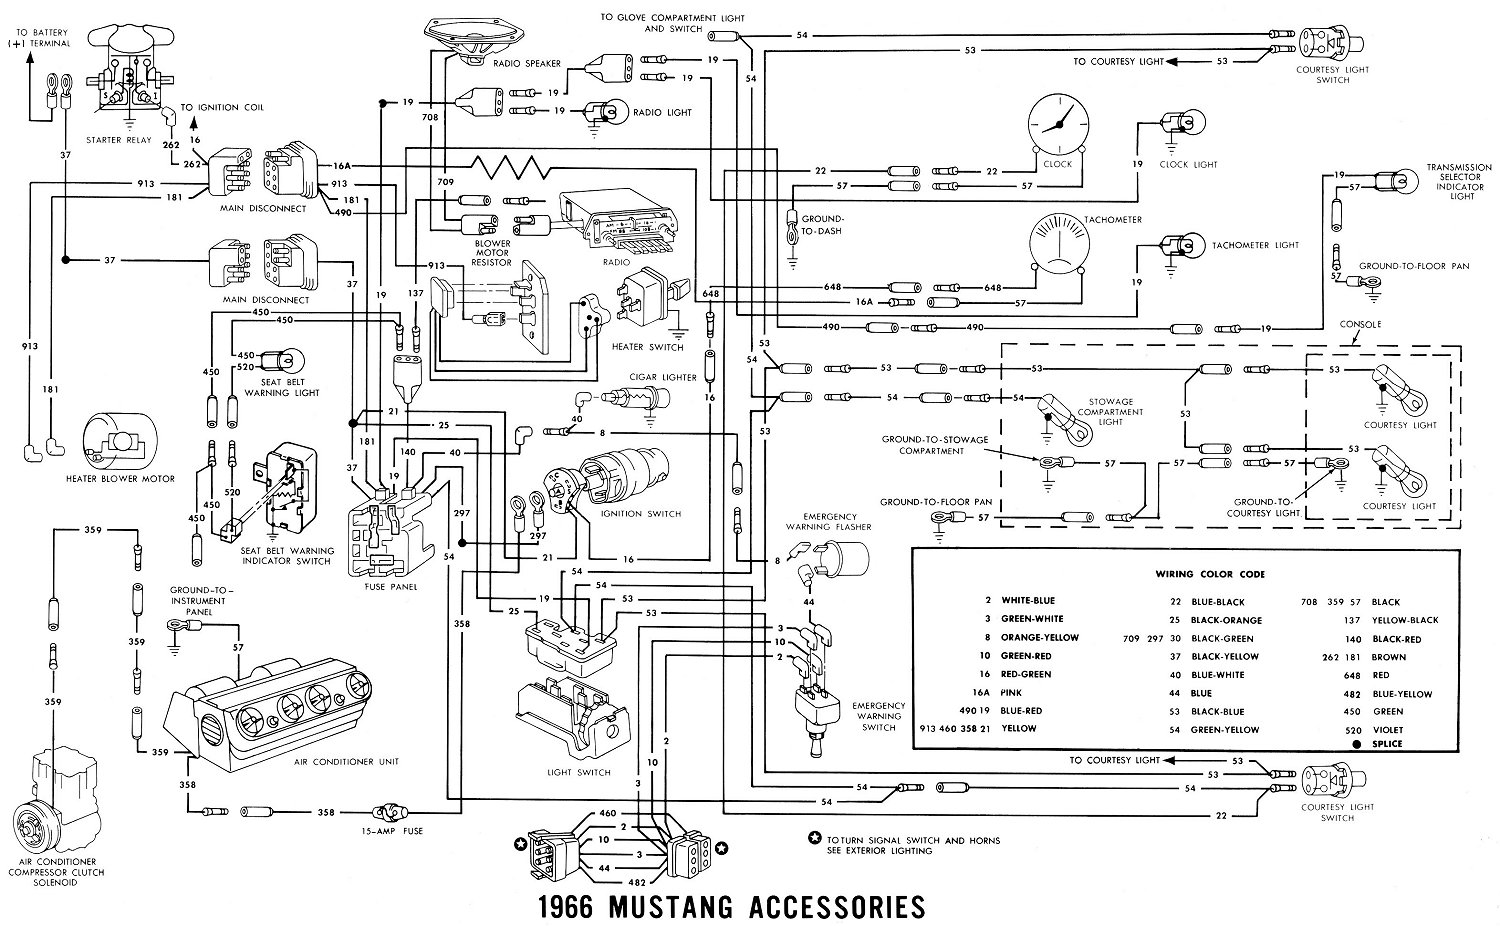 66acces1 1966 mustang wiring diagrams average joe restoration 1966 mustang wiring diagrams at creativeand.co